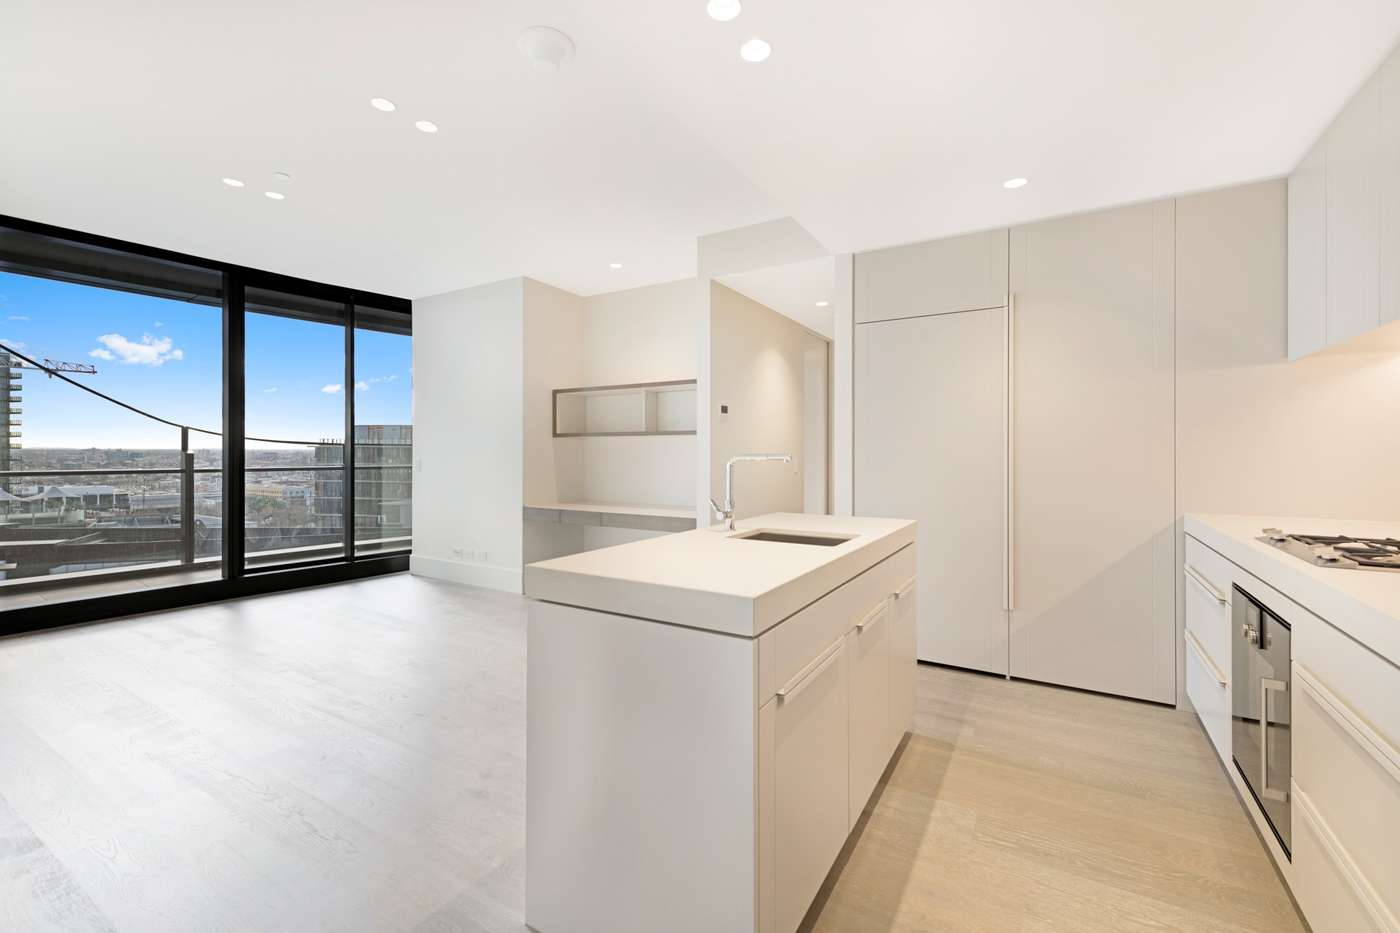 Main view of Homely apartment listing, 1902A/1 Almeida Crescent, South Yarra, VIC 3141